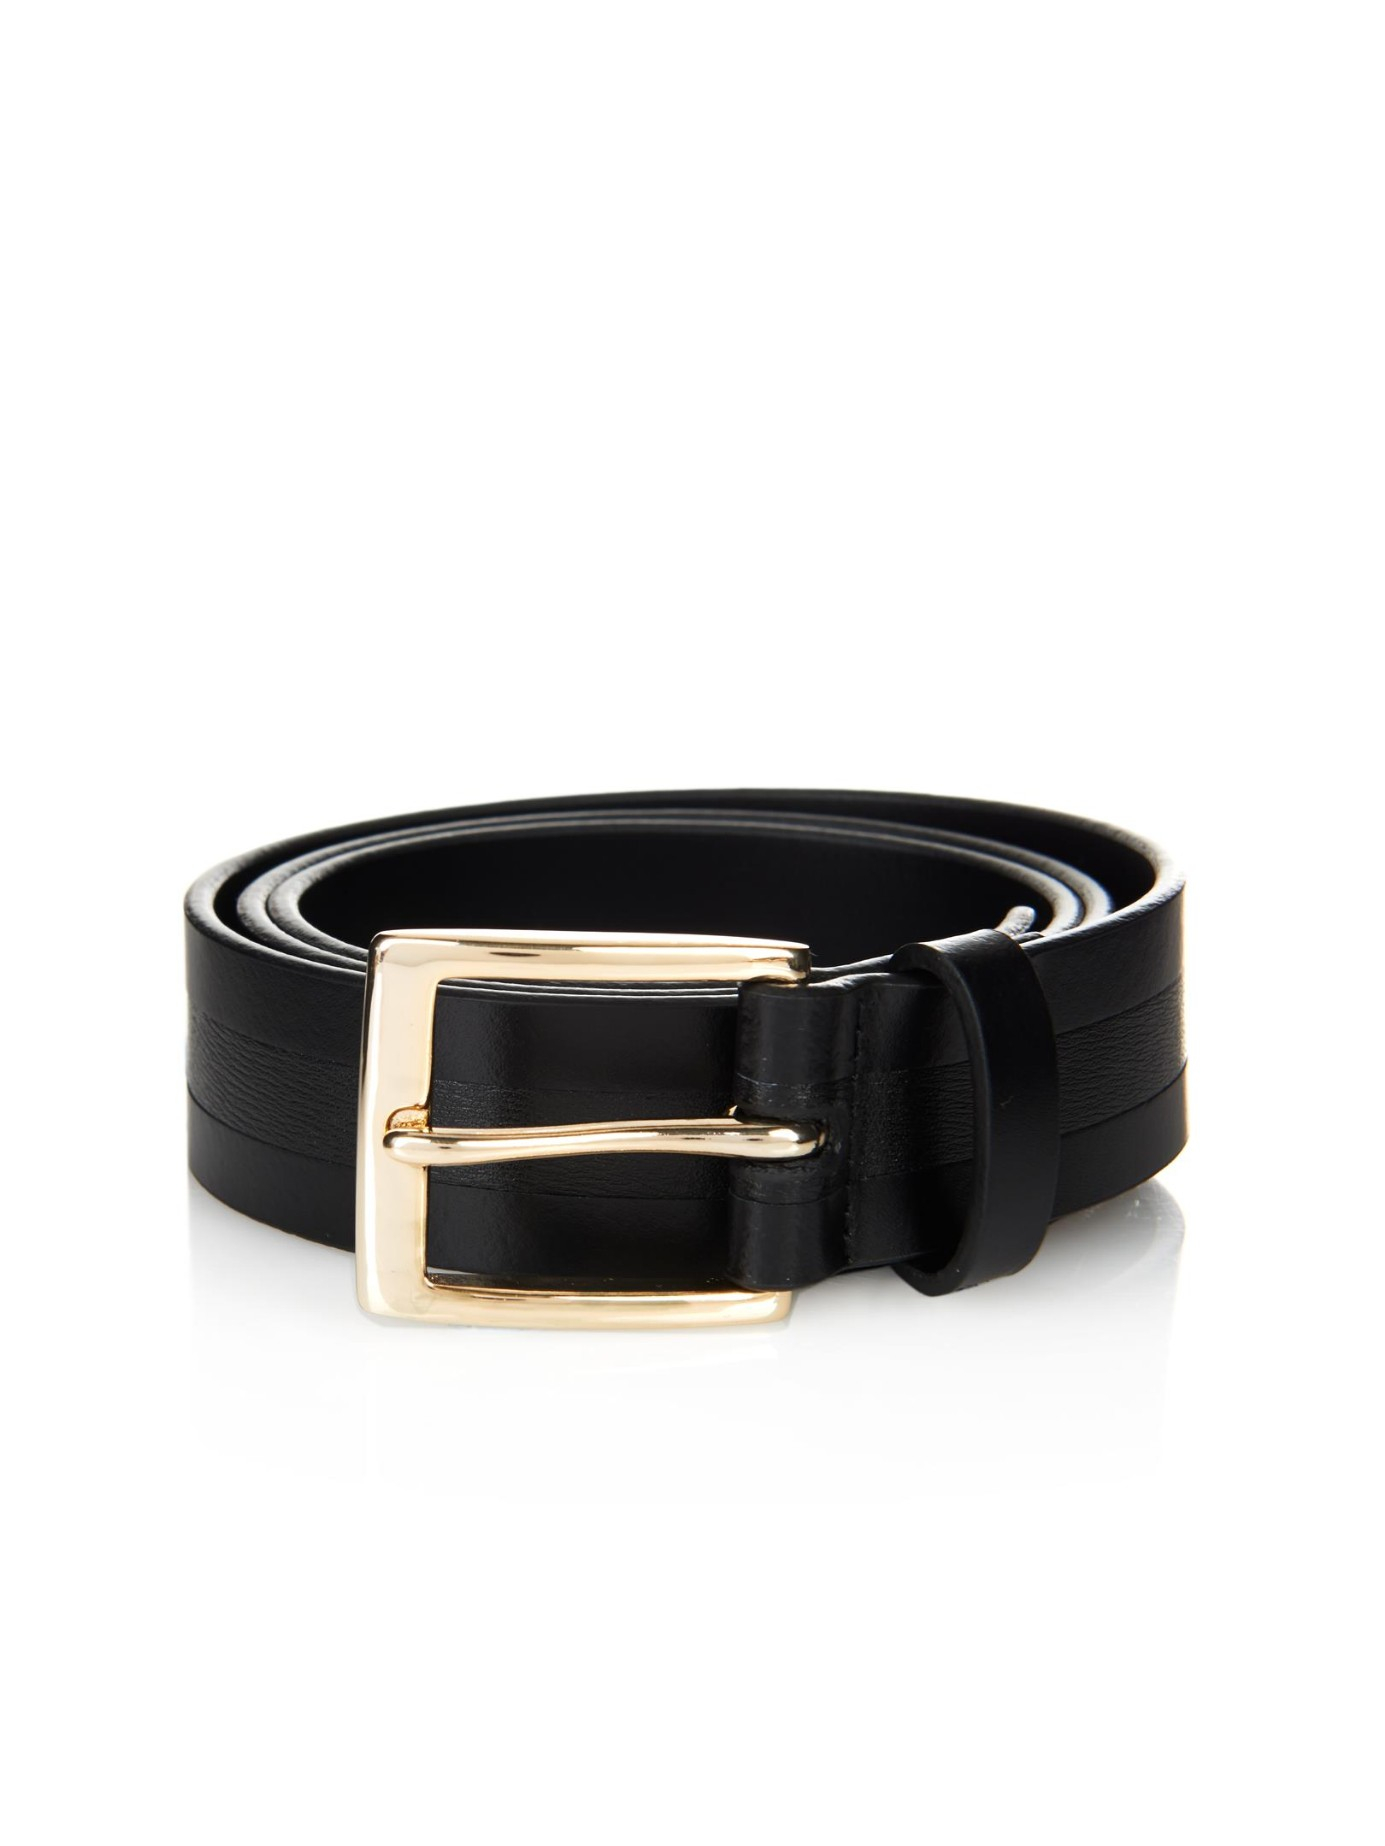 paul smith embossed leather belt in black for lyst